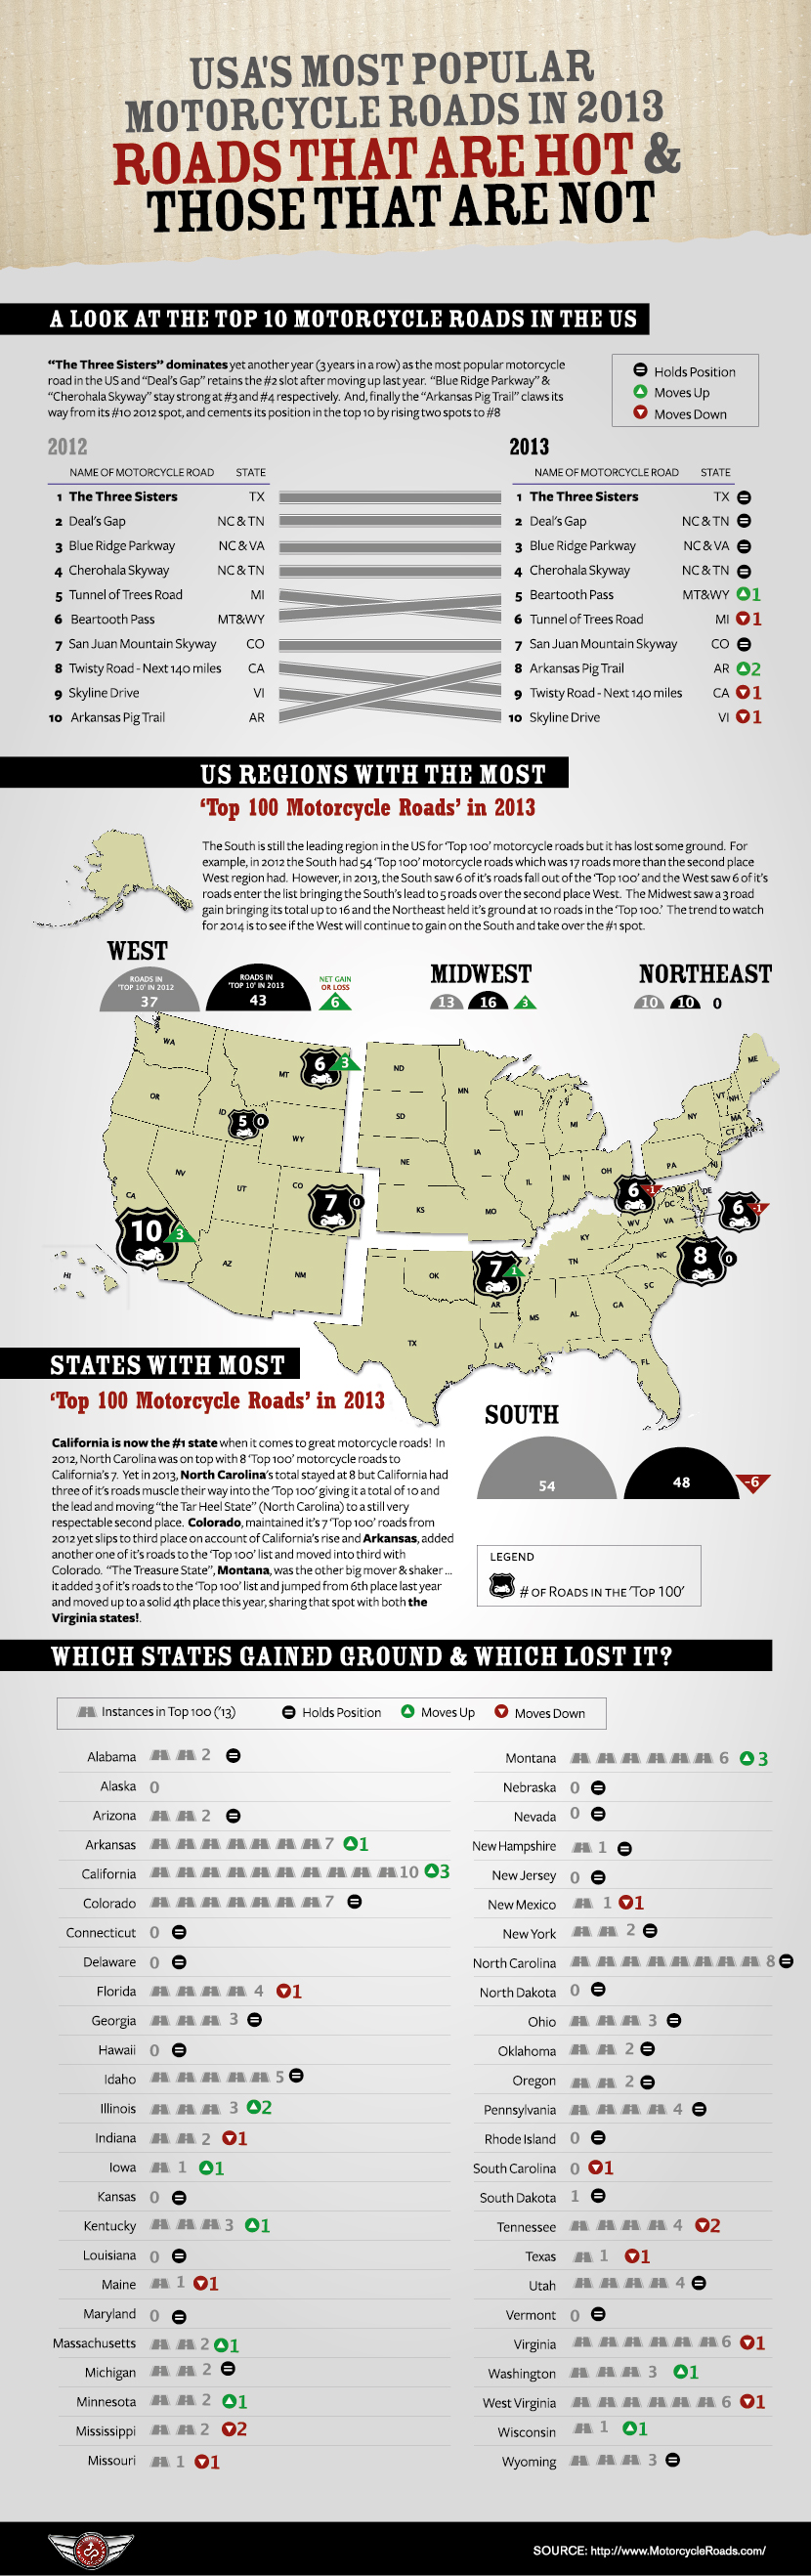 Most Popular Motorcycle Roads of 2013 Report